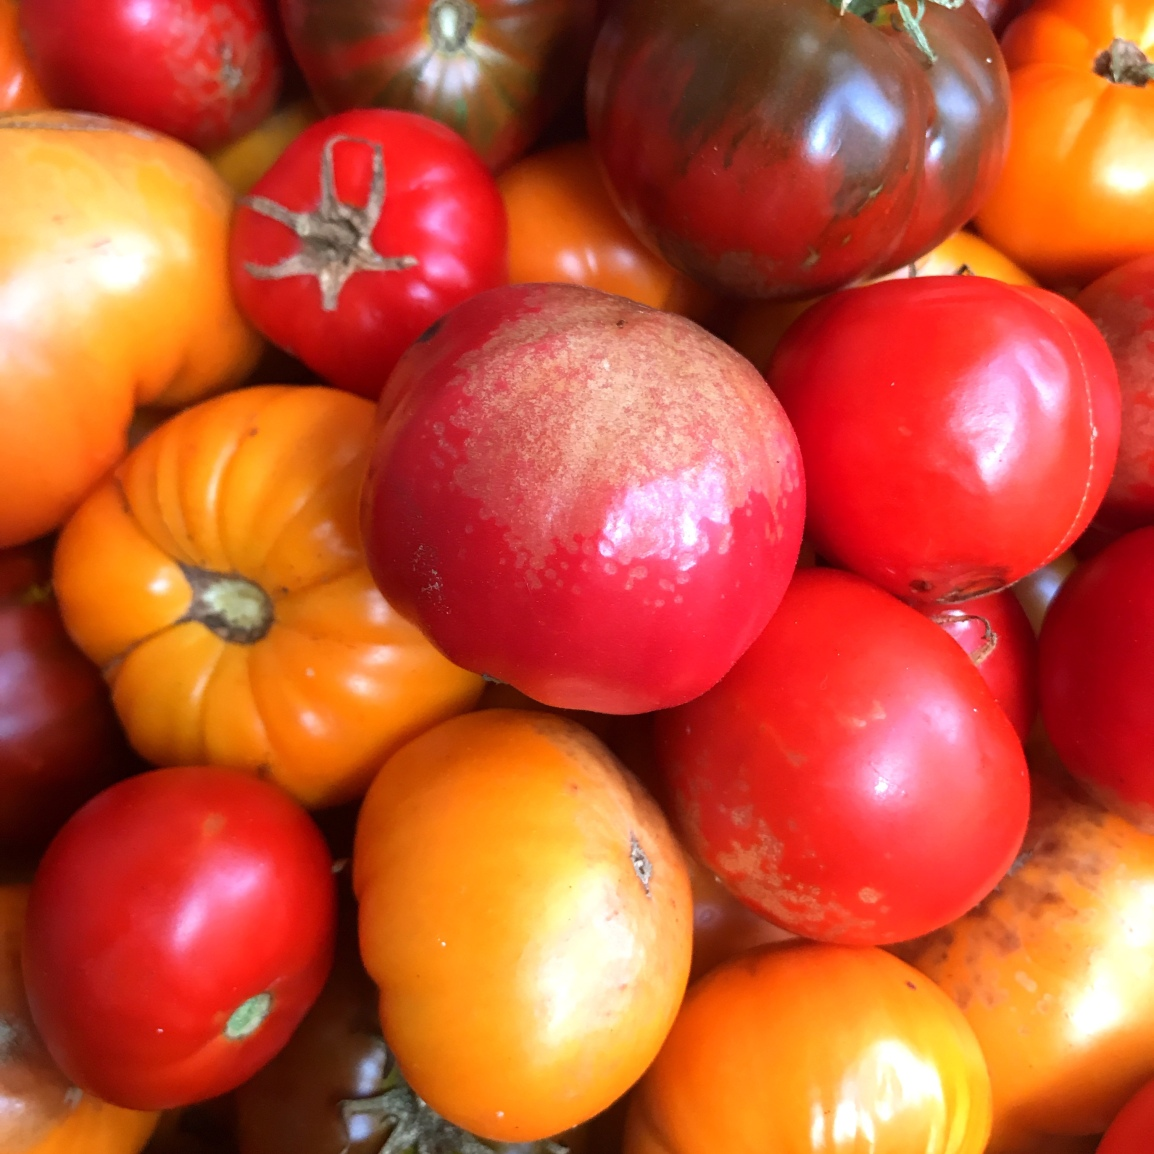 Wednesday ARTfarm Produce Pickups 3/3/2021: Ugly tomatoes